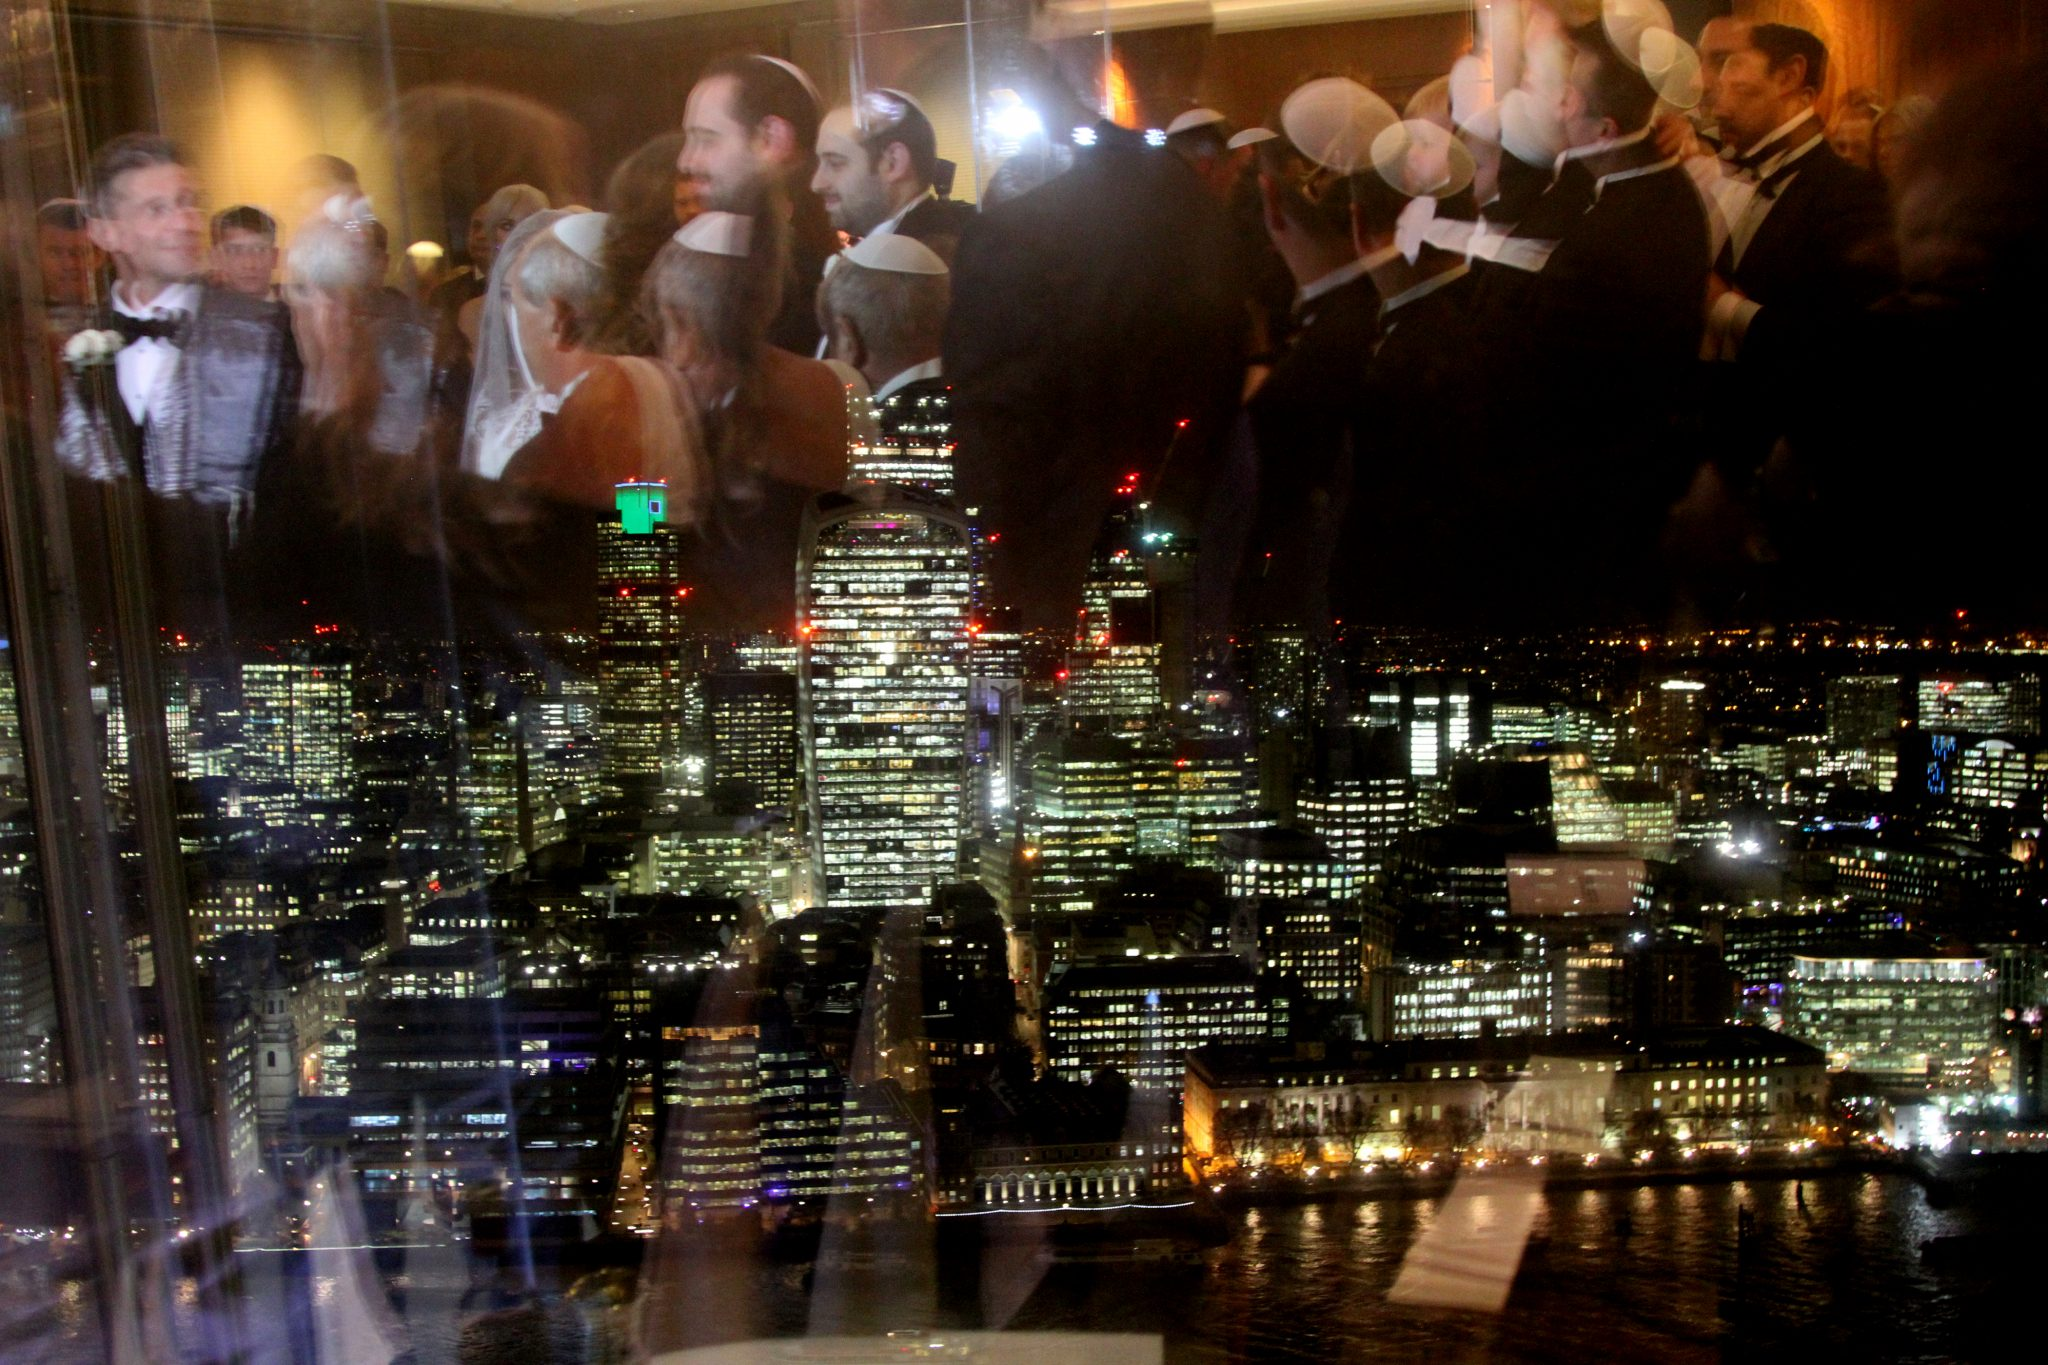 refelction in widnow of ceremony at The Shangri-La Hotel, The Shard.